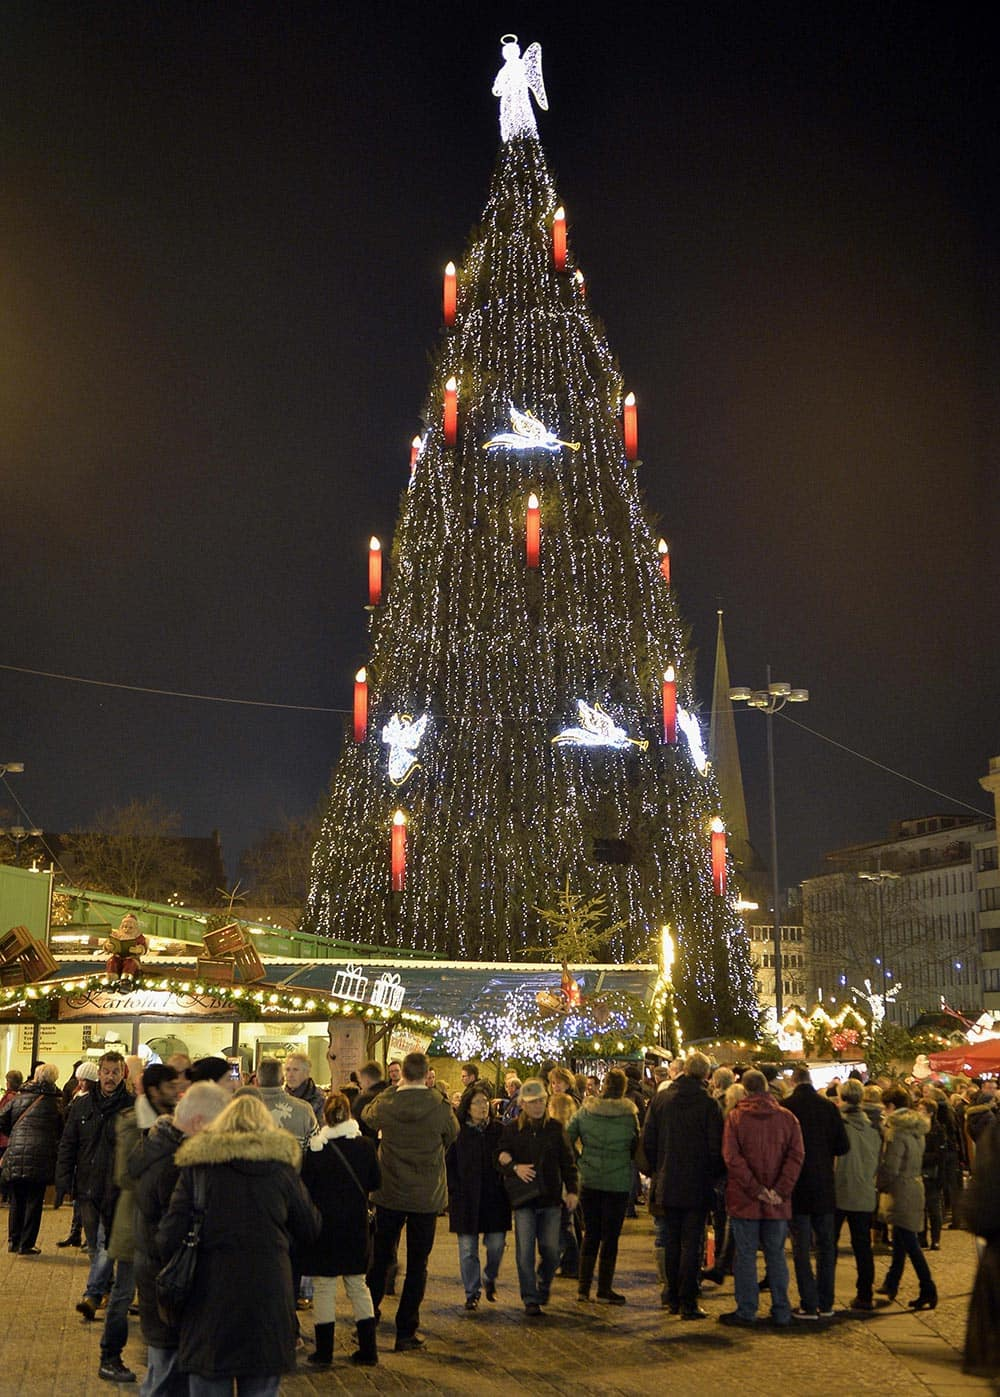 Germany's biggest Christmas tree shines in the center of a Christmas market in Dortmund, Germany.